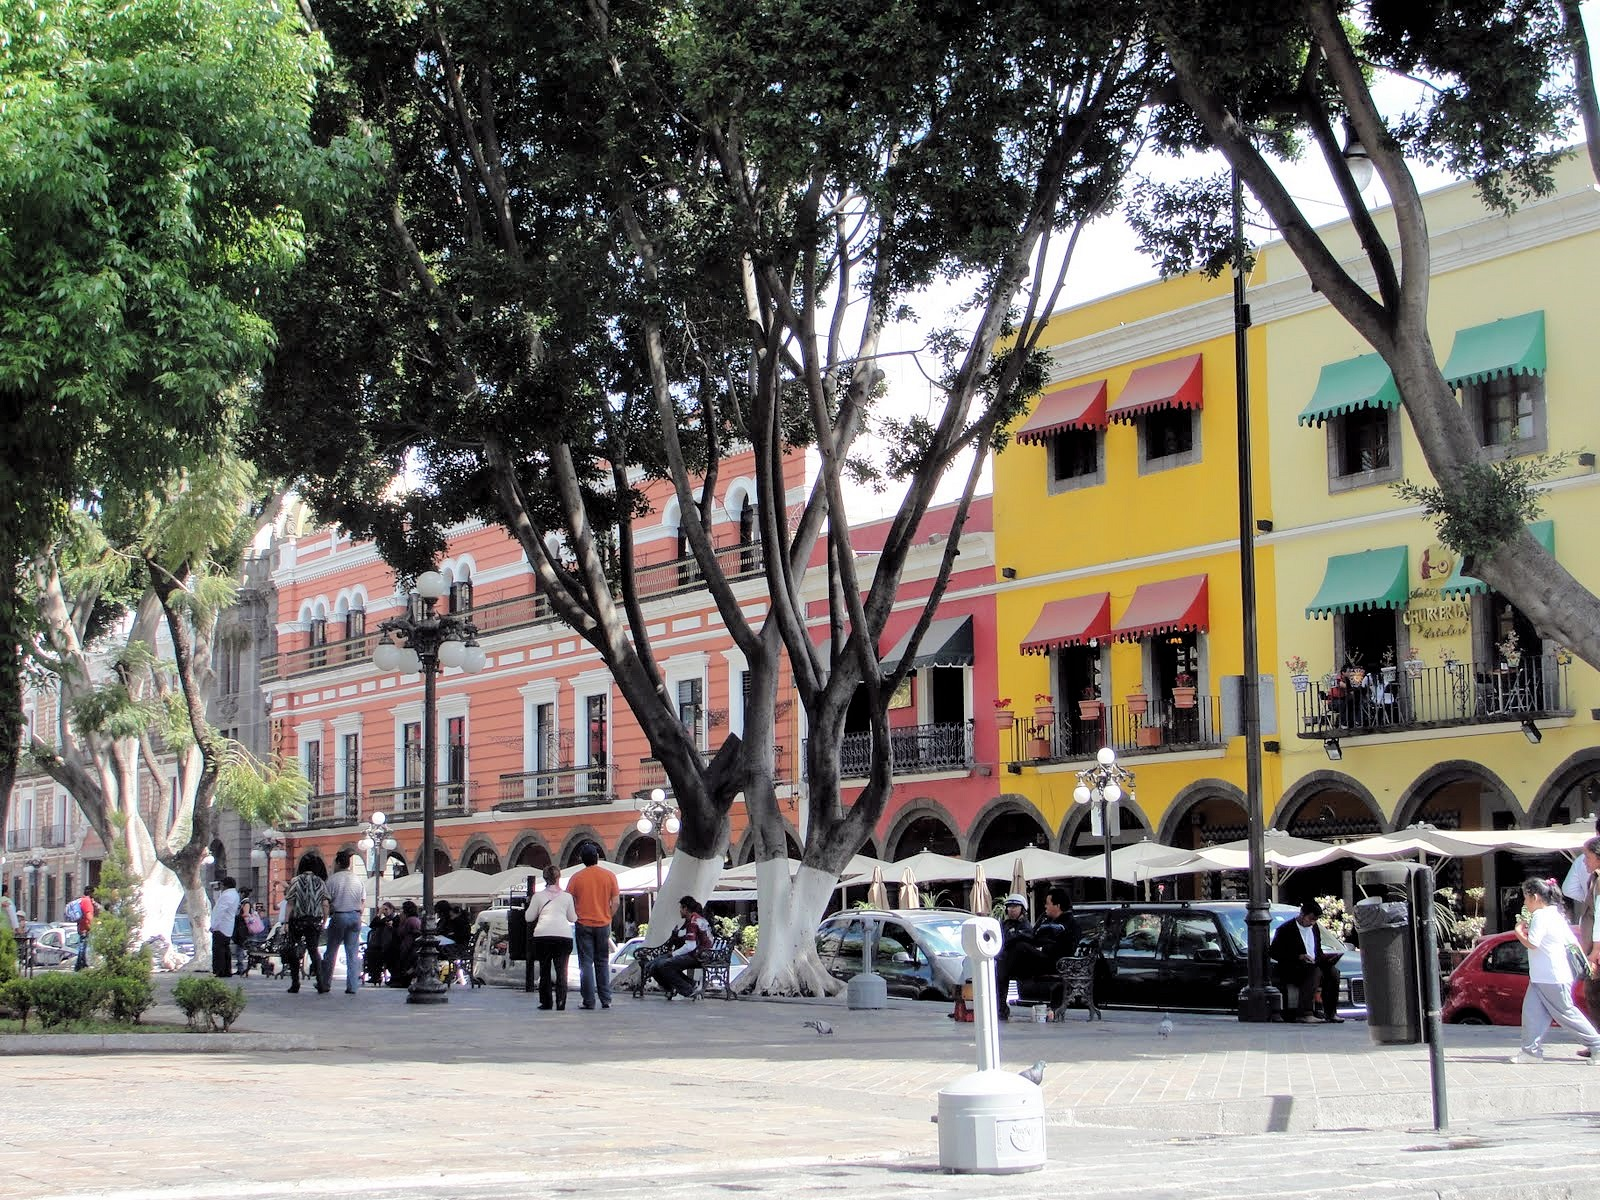 Puebla's large zócalo is lined with sidewalk cafés